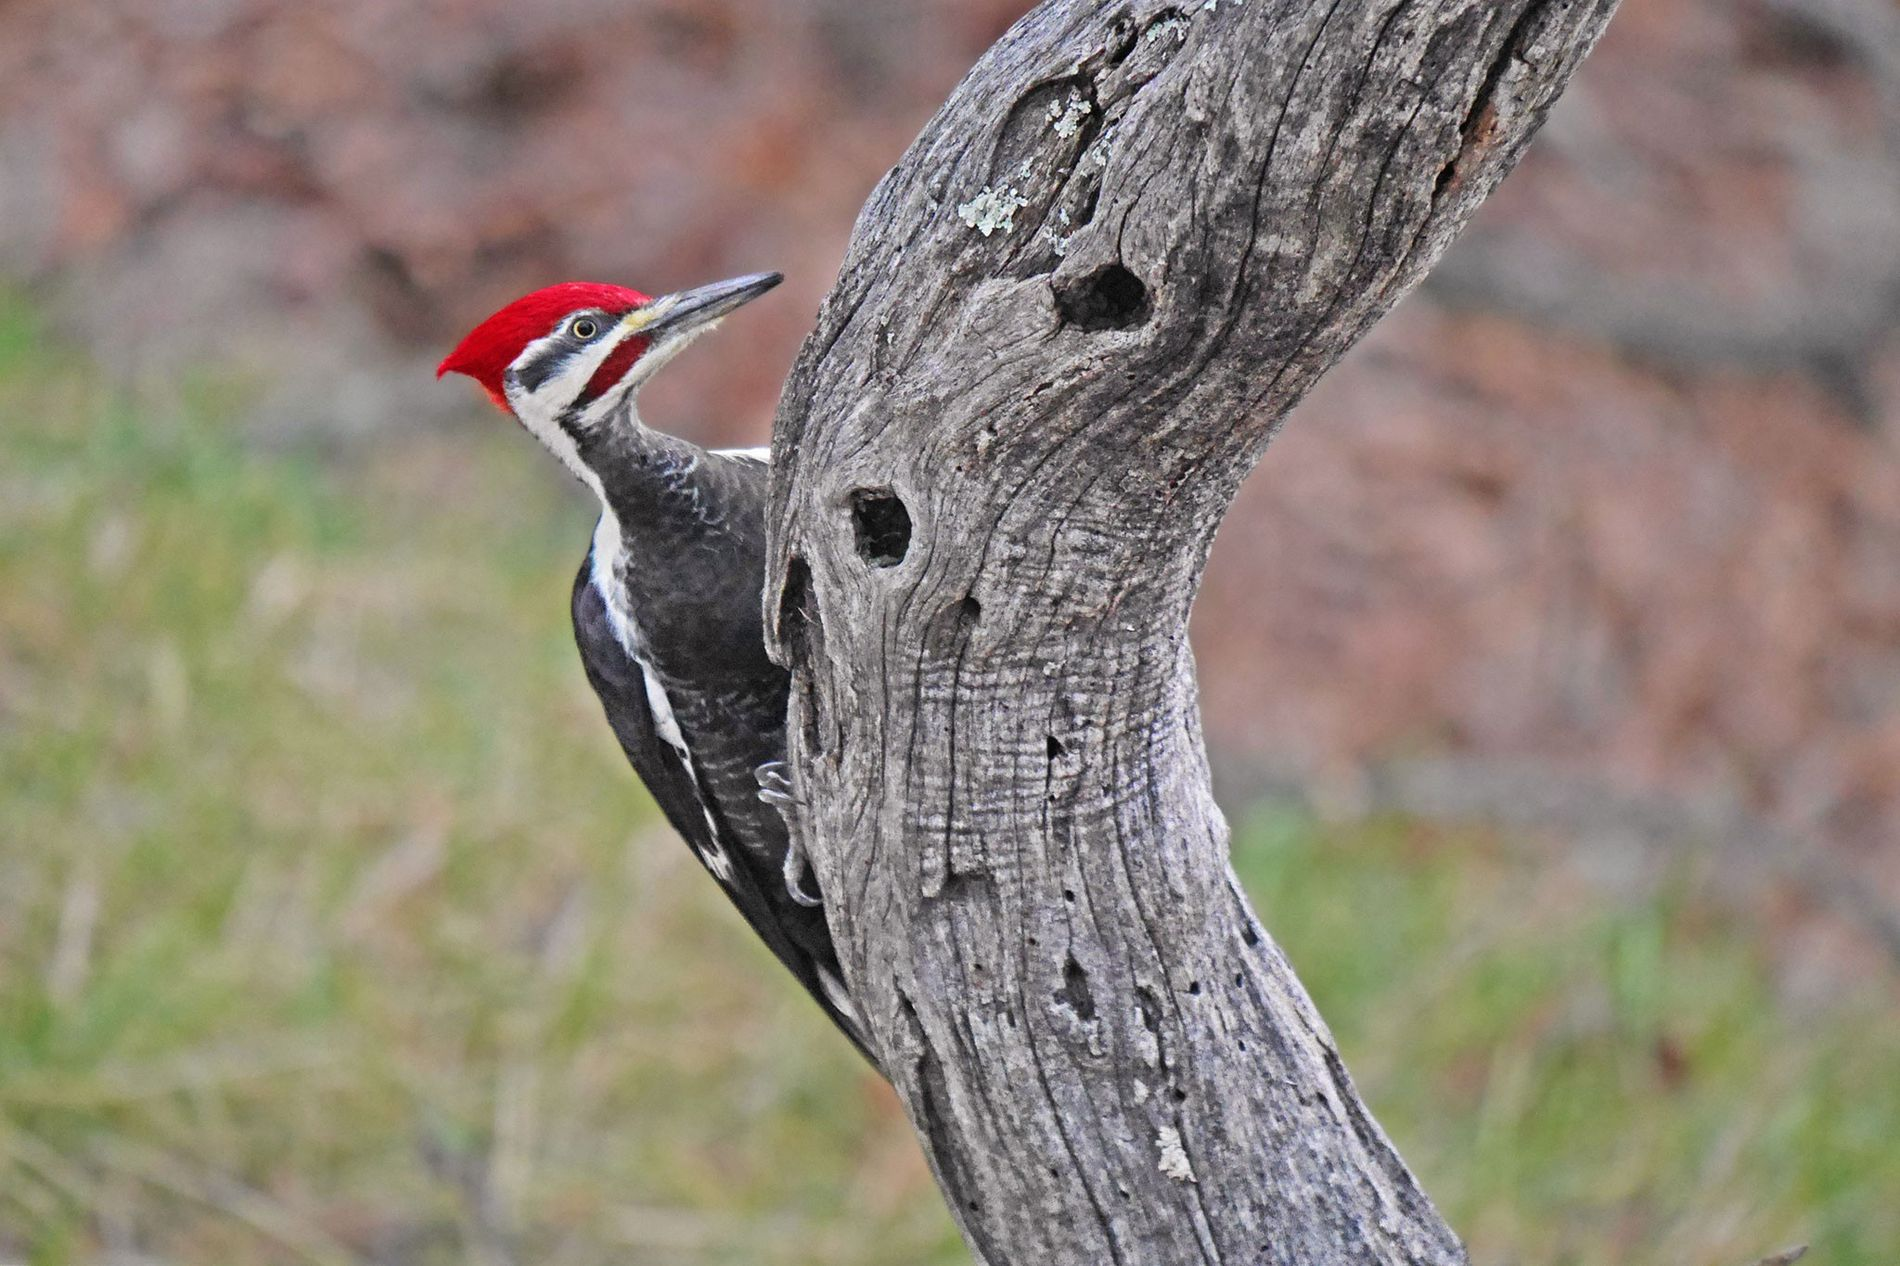 Pileated woodpeckers rely on dead trees, like this locust tree, to excavate holes to use for nesting.